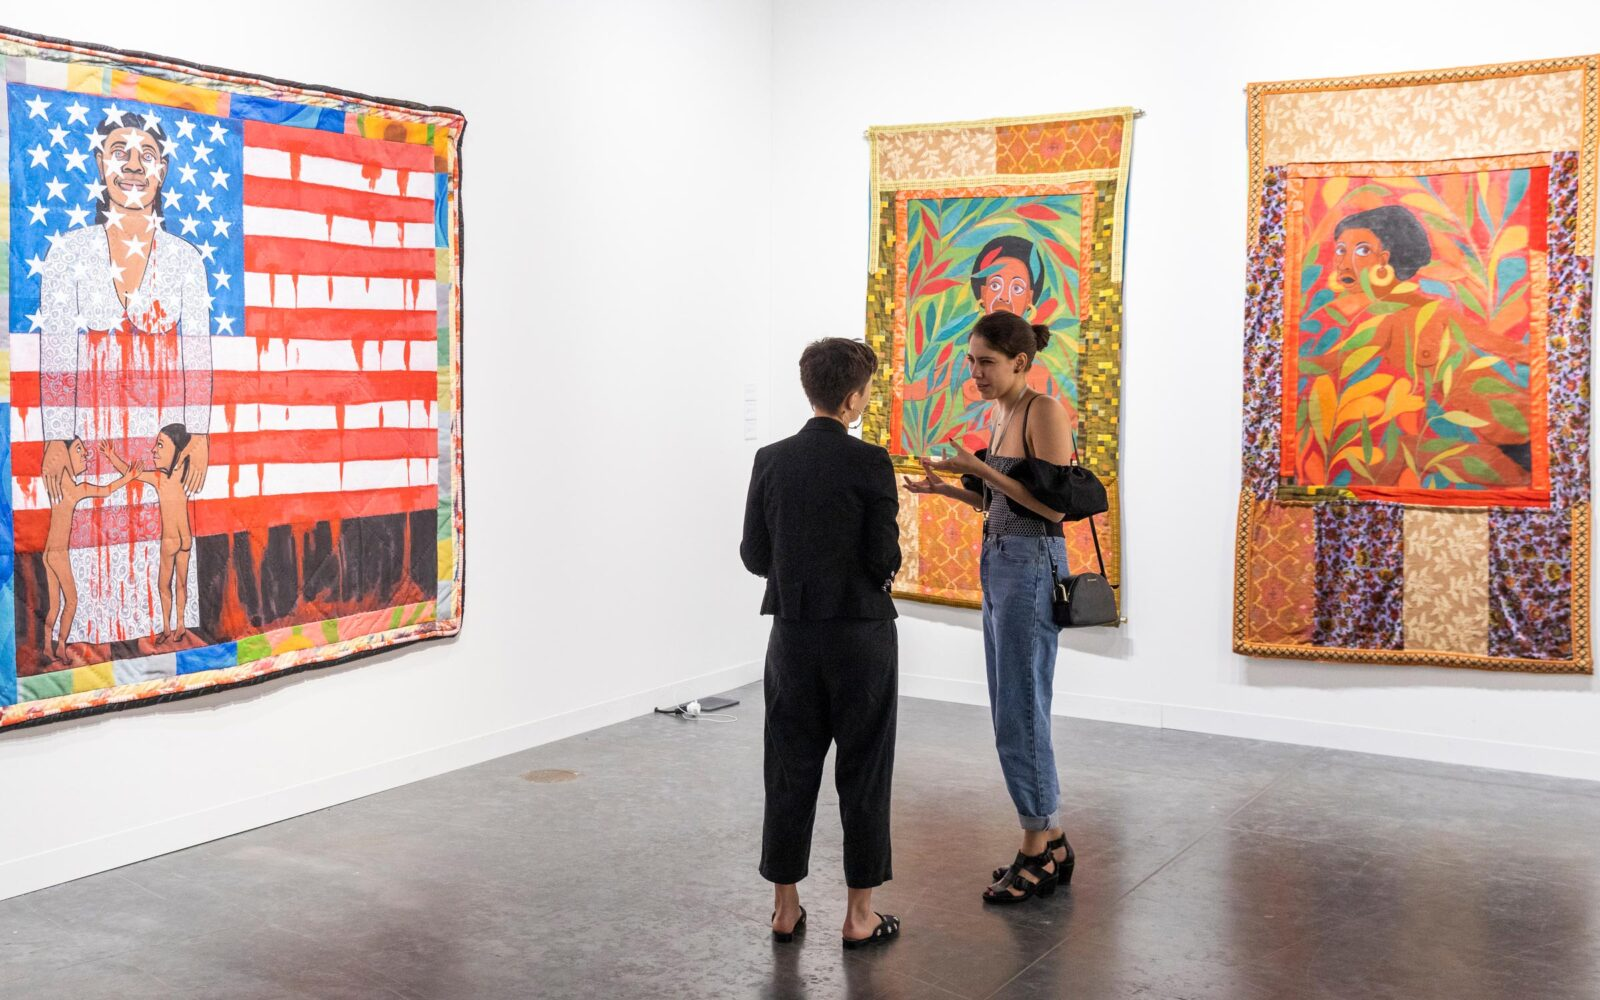 Art Basel Global Market Report 2021 Shows Sales Drop In 2020 By 22% To $ 50 Billion